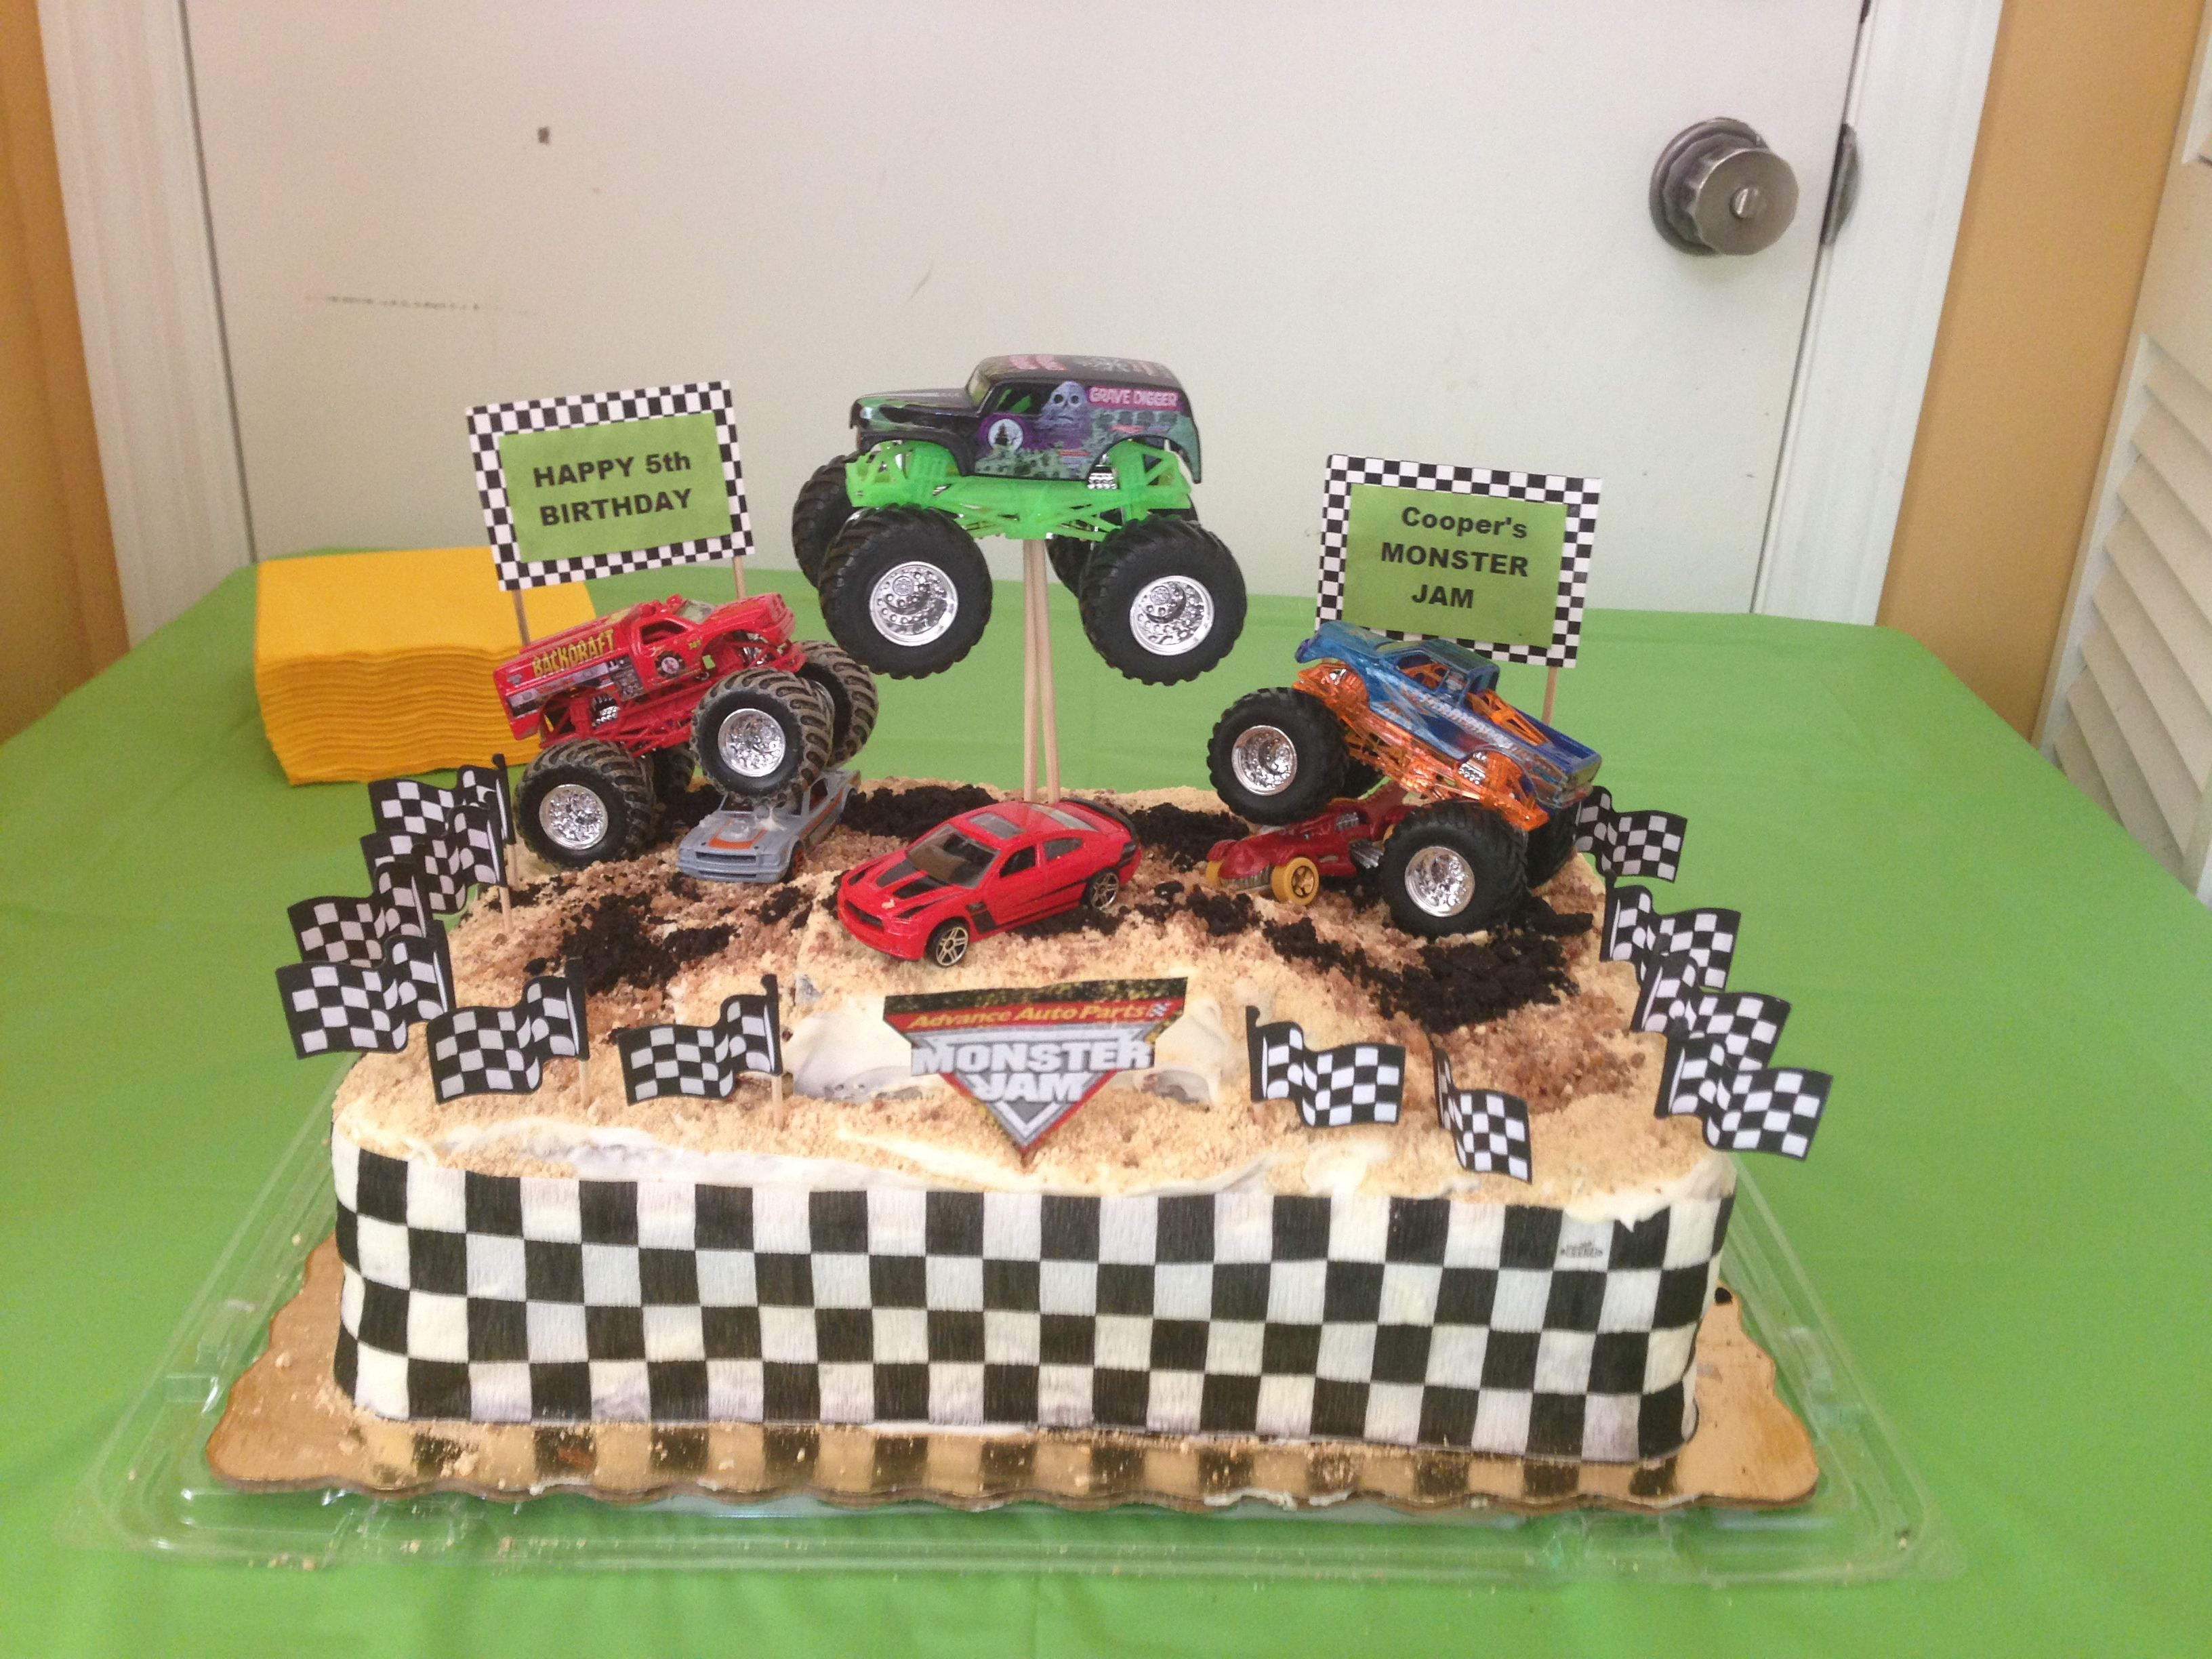 Monster jam birthday cake I used graham crackers and Heath bar